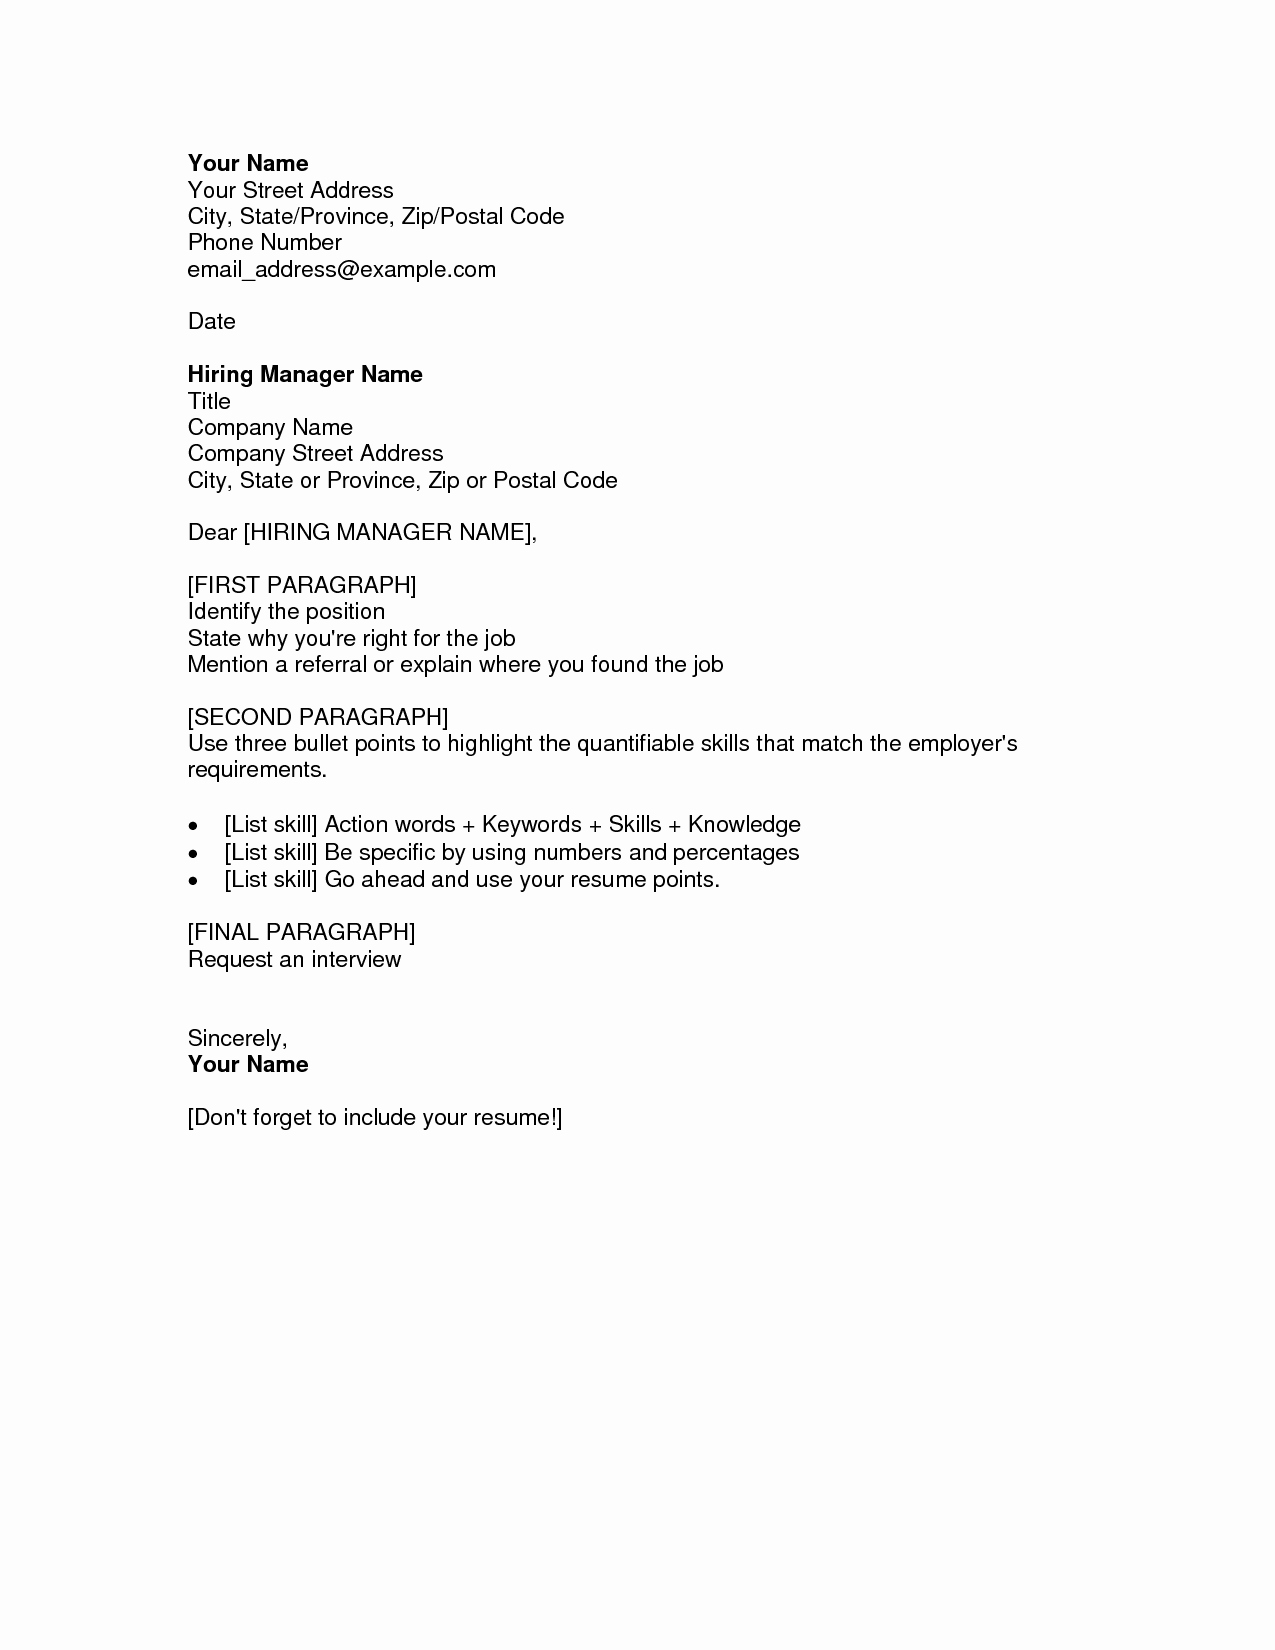 Sample Resume and Cover Letter Beautiful Resume Cover Letter Examples